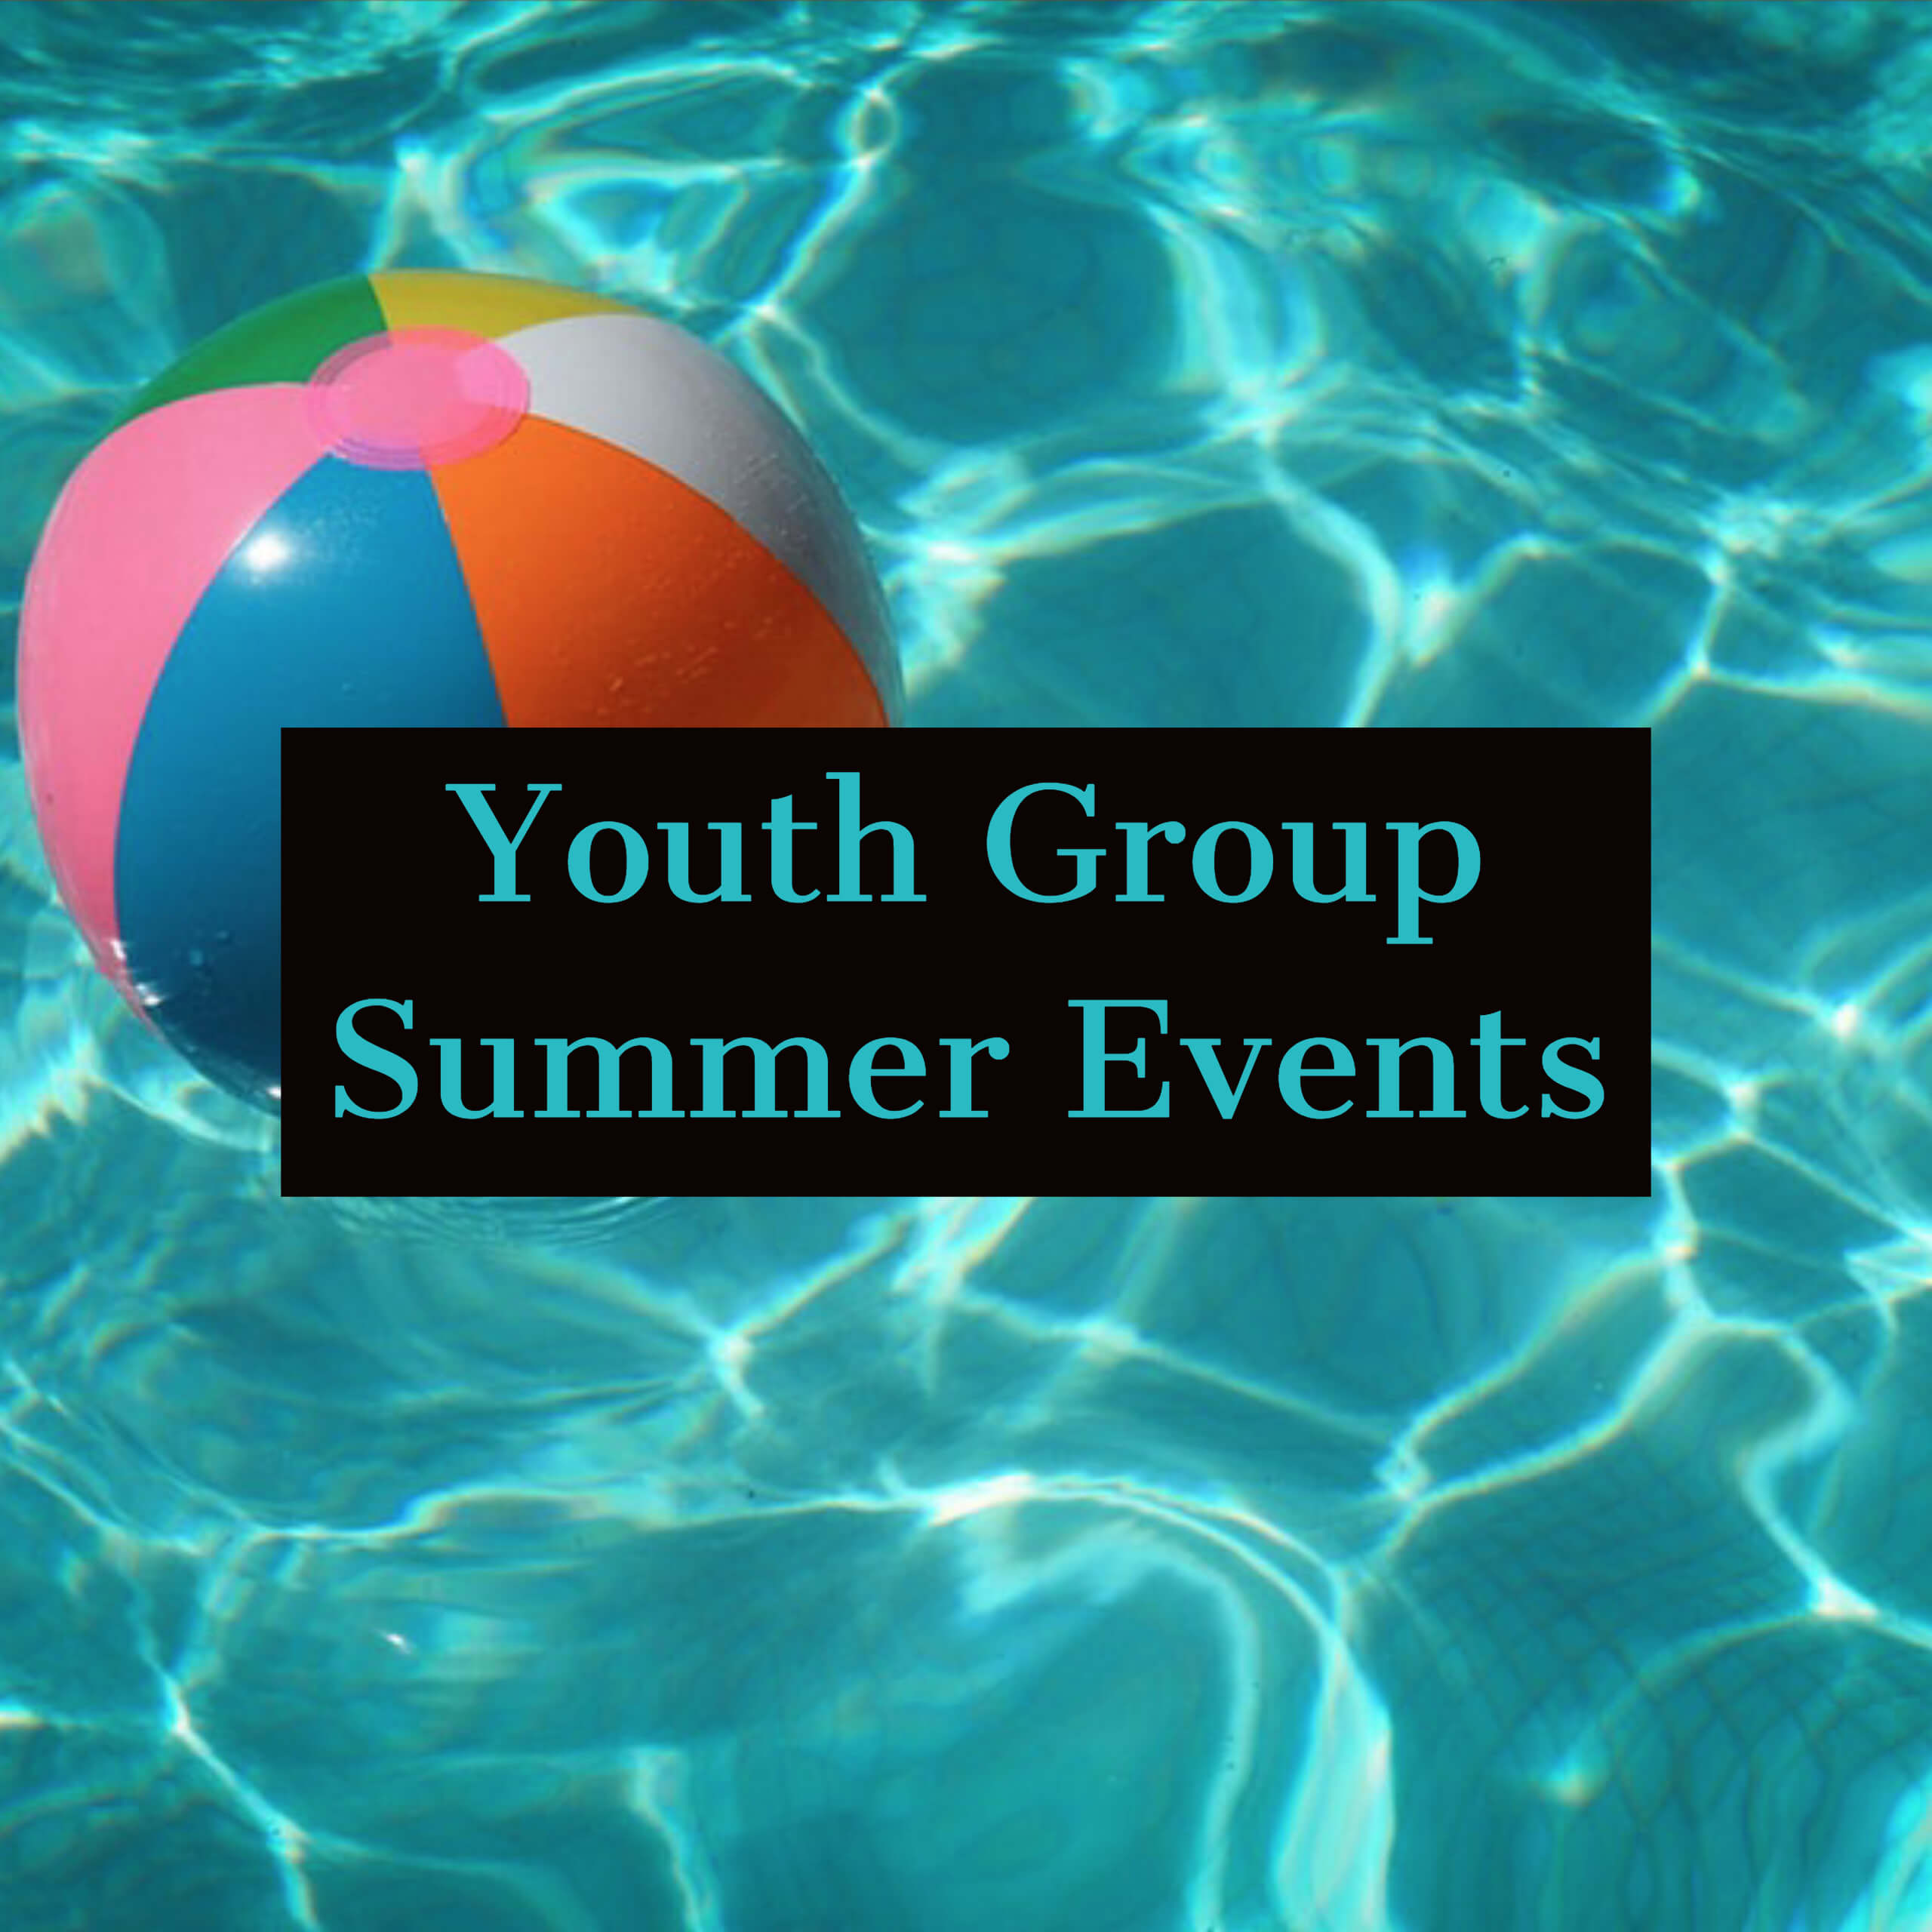 Youth Group Summer